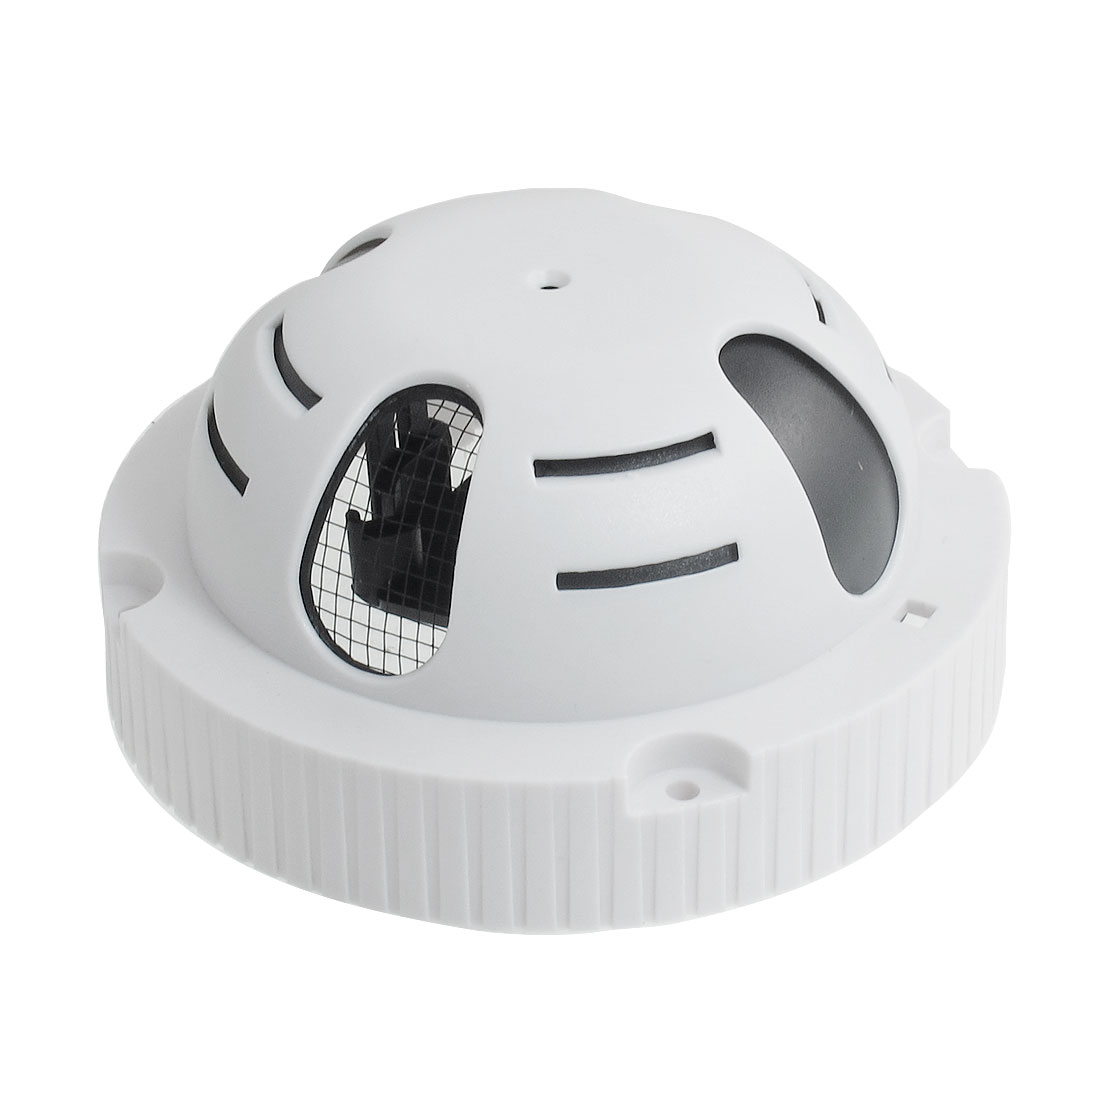 Indoor Wall CCD Dome Camera Meshy Housing Case White